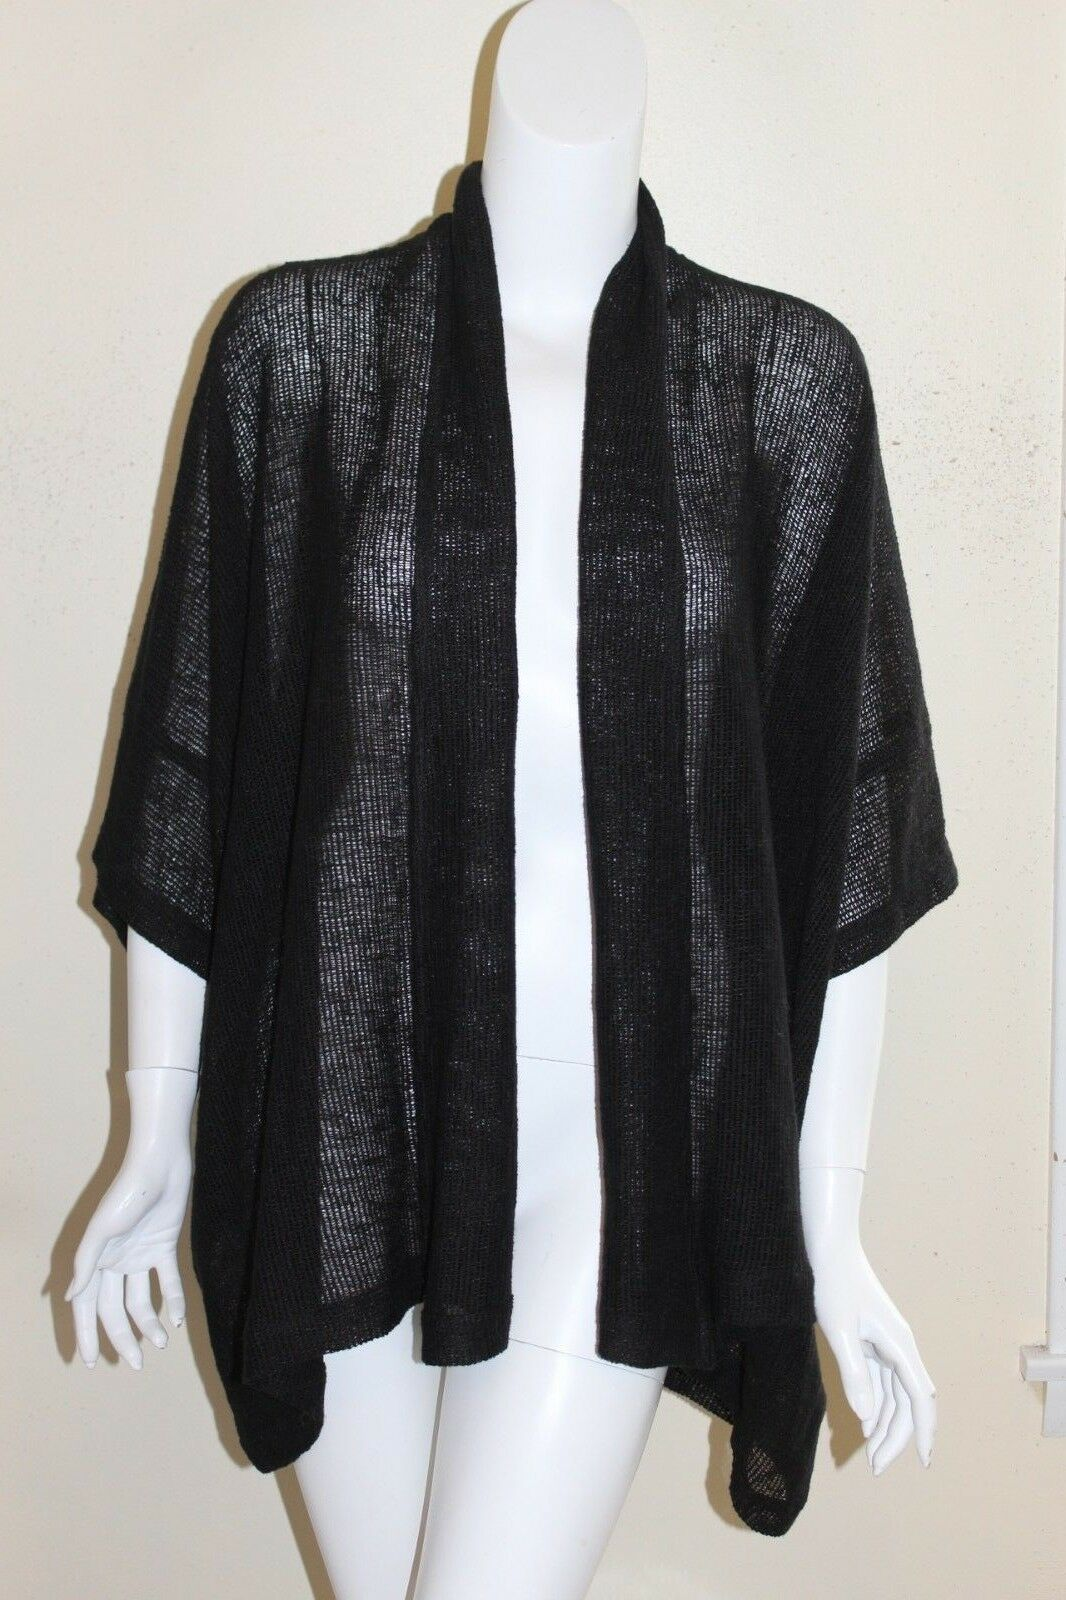 NEW Eskandar Sz 0 Jet schwarz Cotton LInen Mesh Wide S S Sweater Shawl Jacket